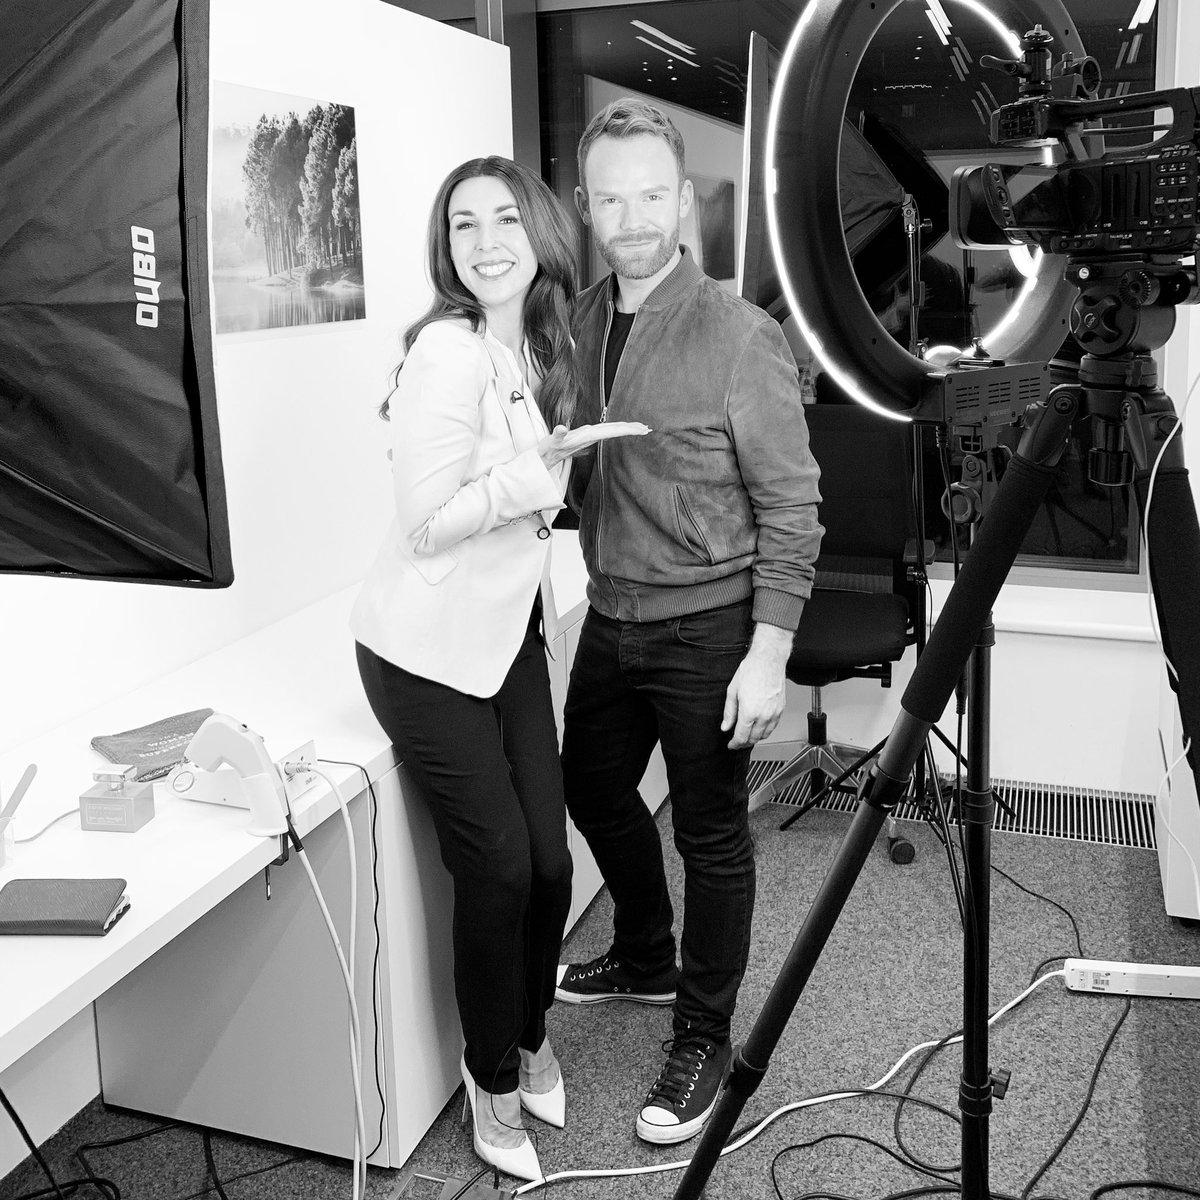 SO much fun filming with @JudithWilliams this week at the @JudithWilliamsU HQ in #Innsbruck #Austria for @qvcuk - I can't wait to come back! X https://t.co/I2NTKEQbhO